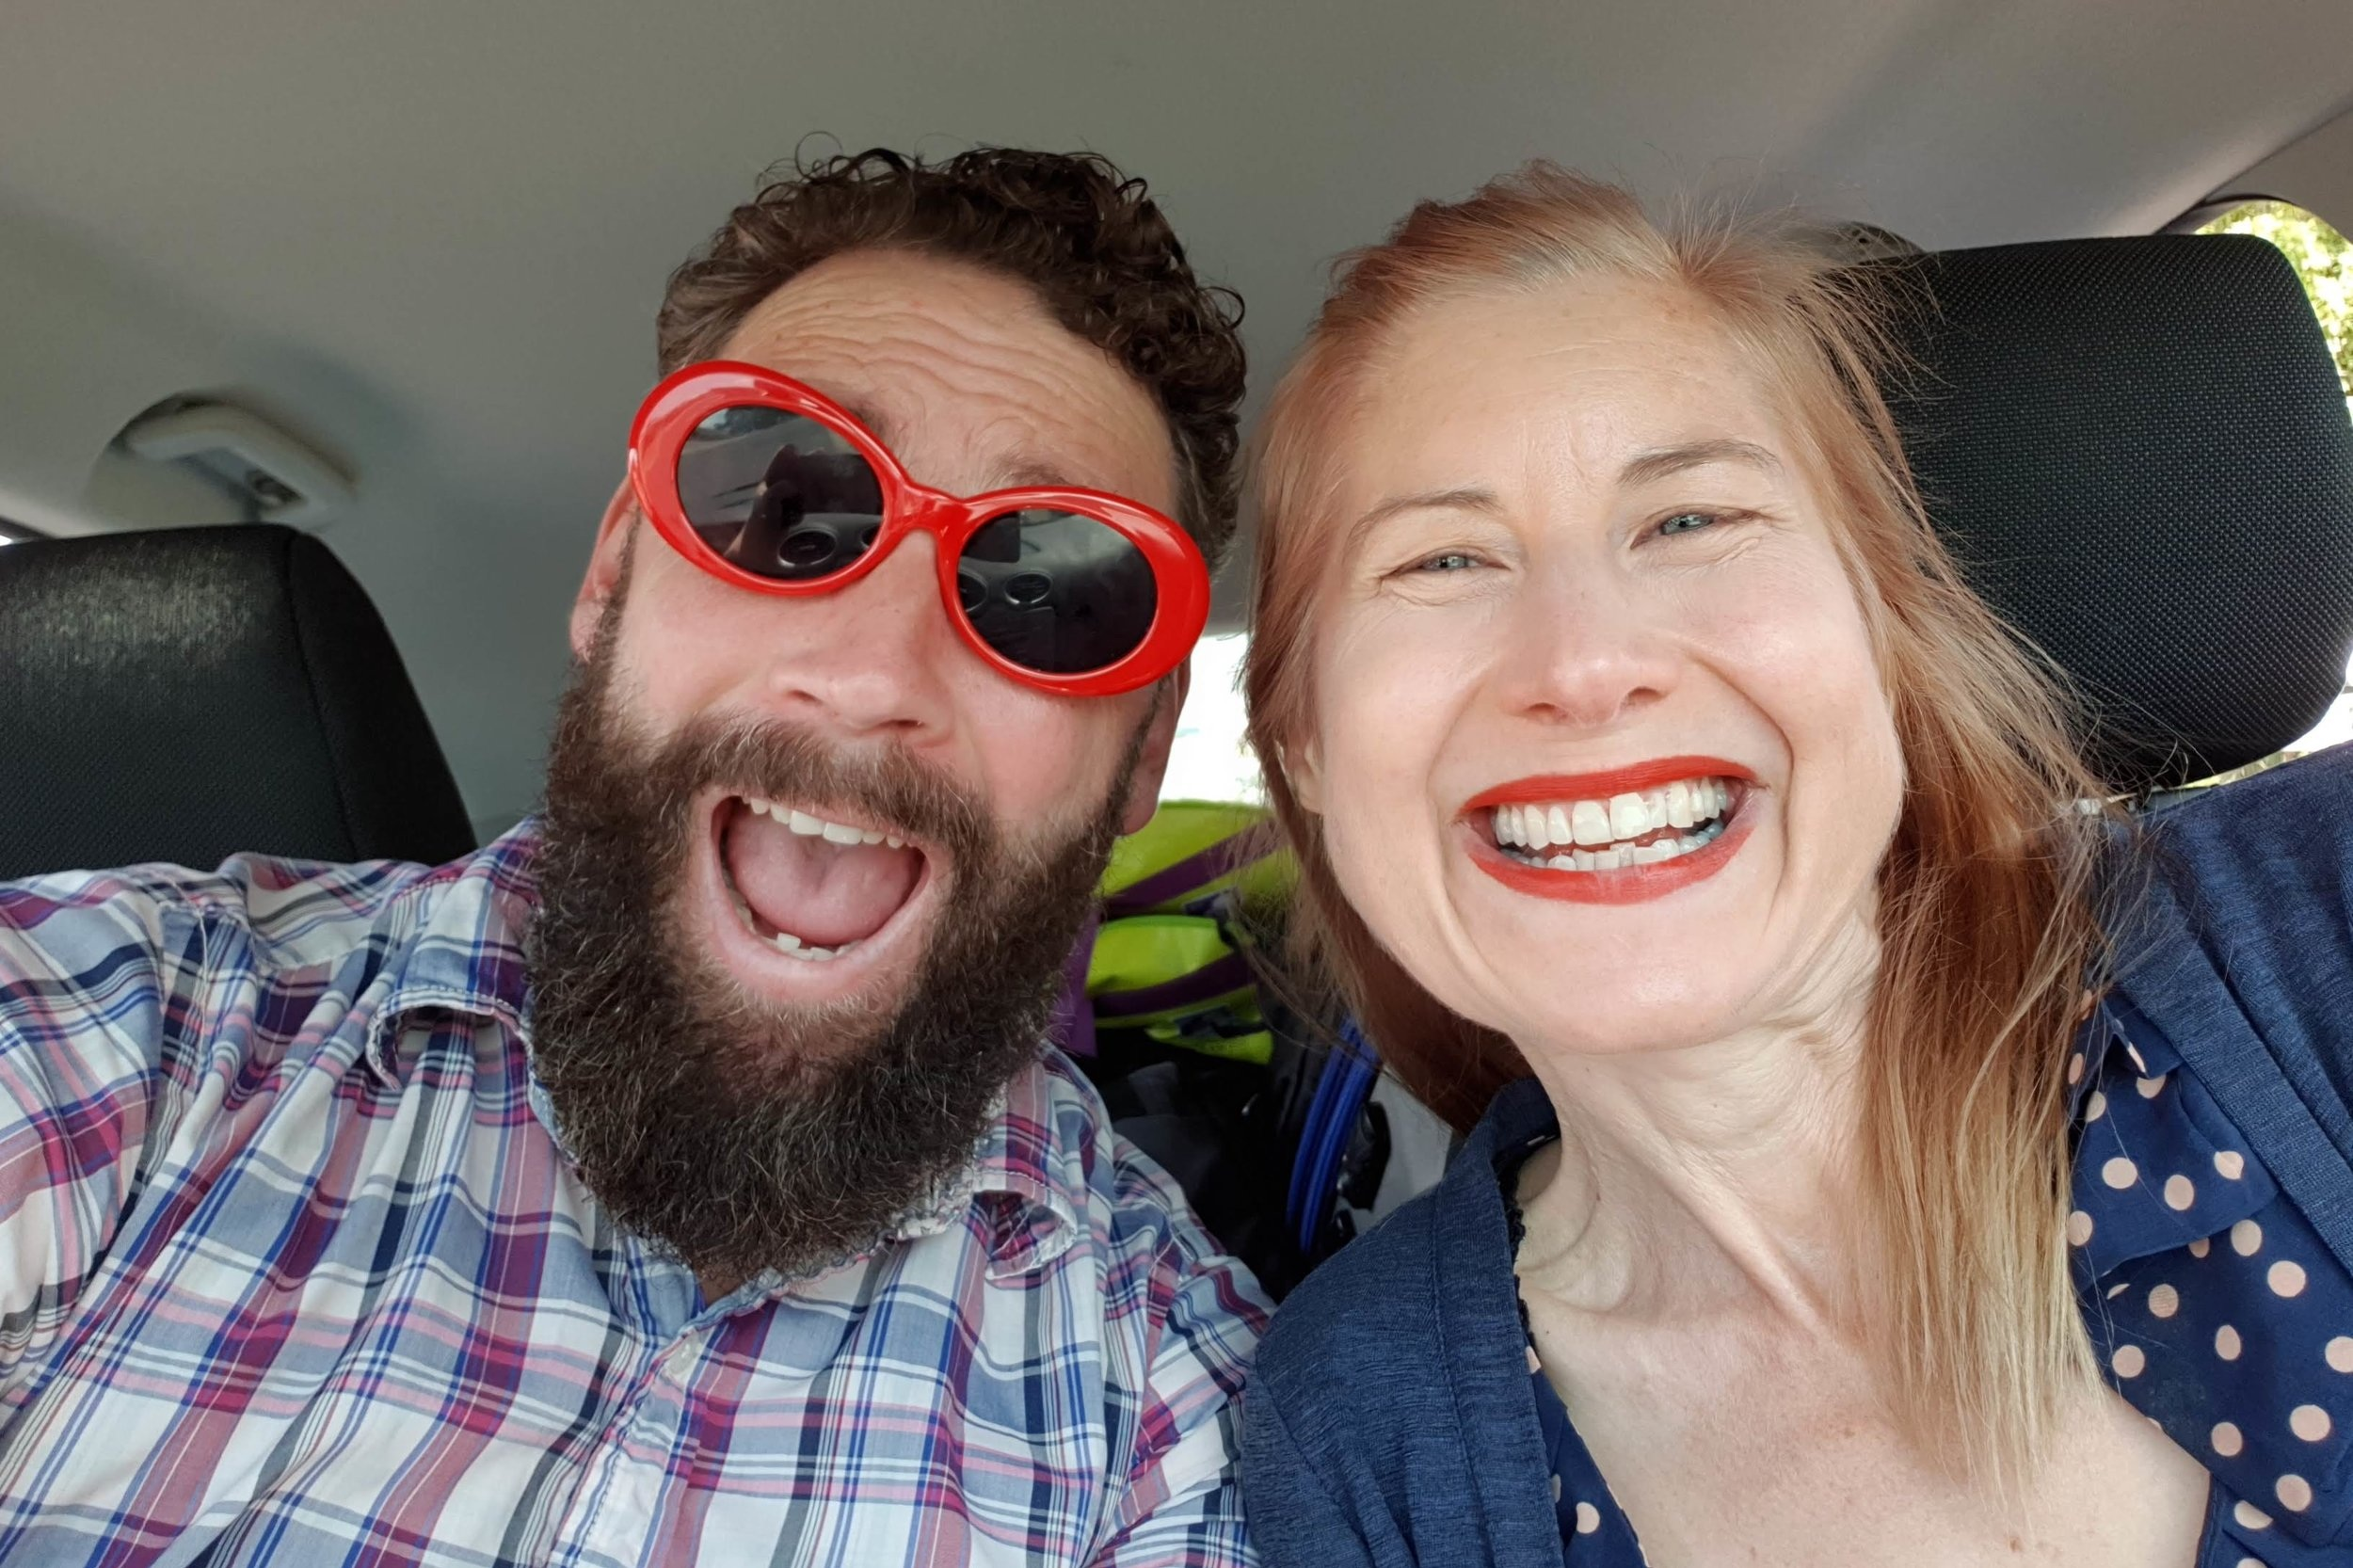 Road trip time with my awesome wife Mary!